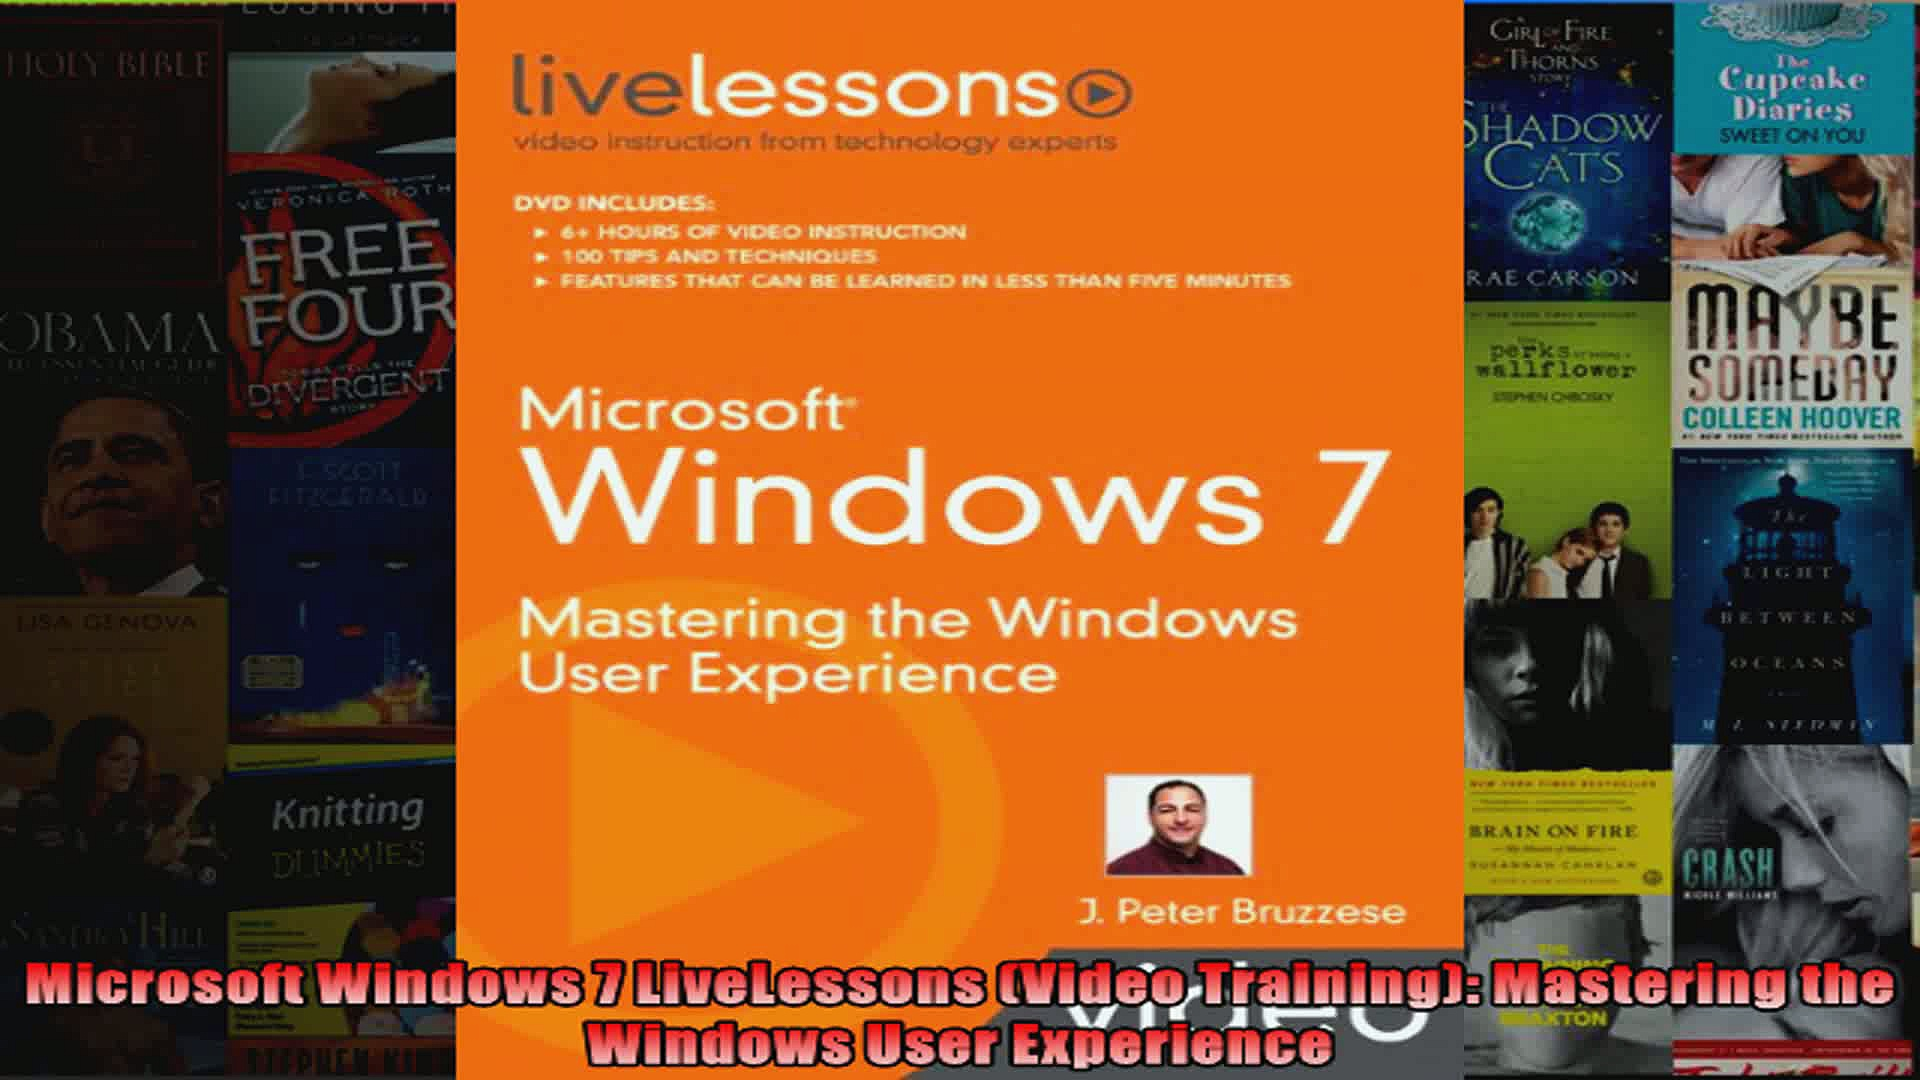 Microsoft Windows 7 LiveLessons Video Training Mastering the Windows User Experience